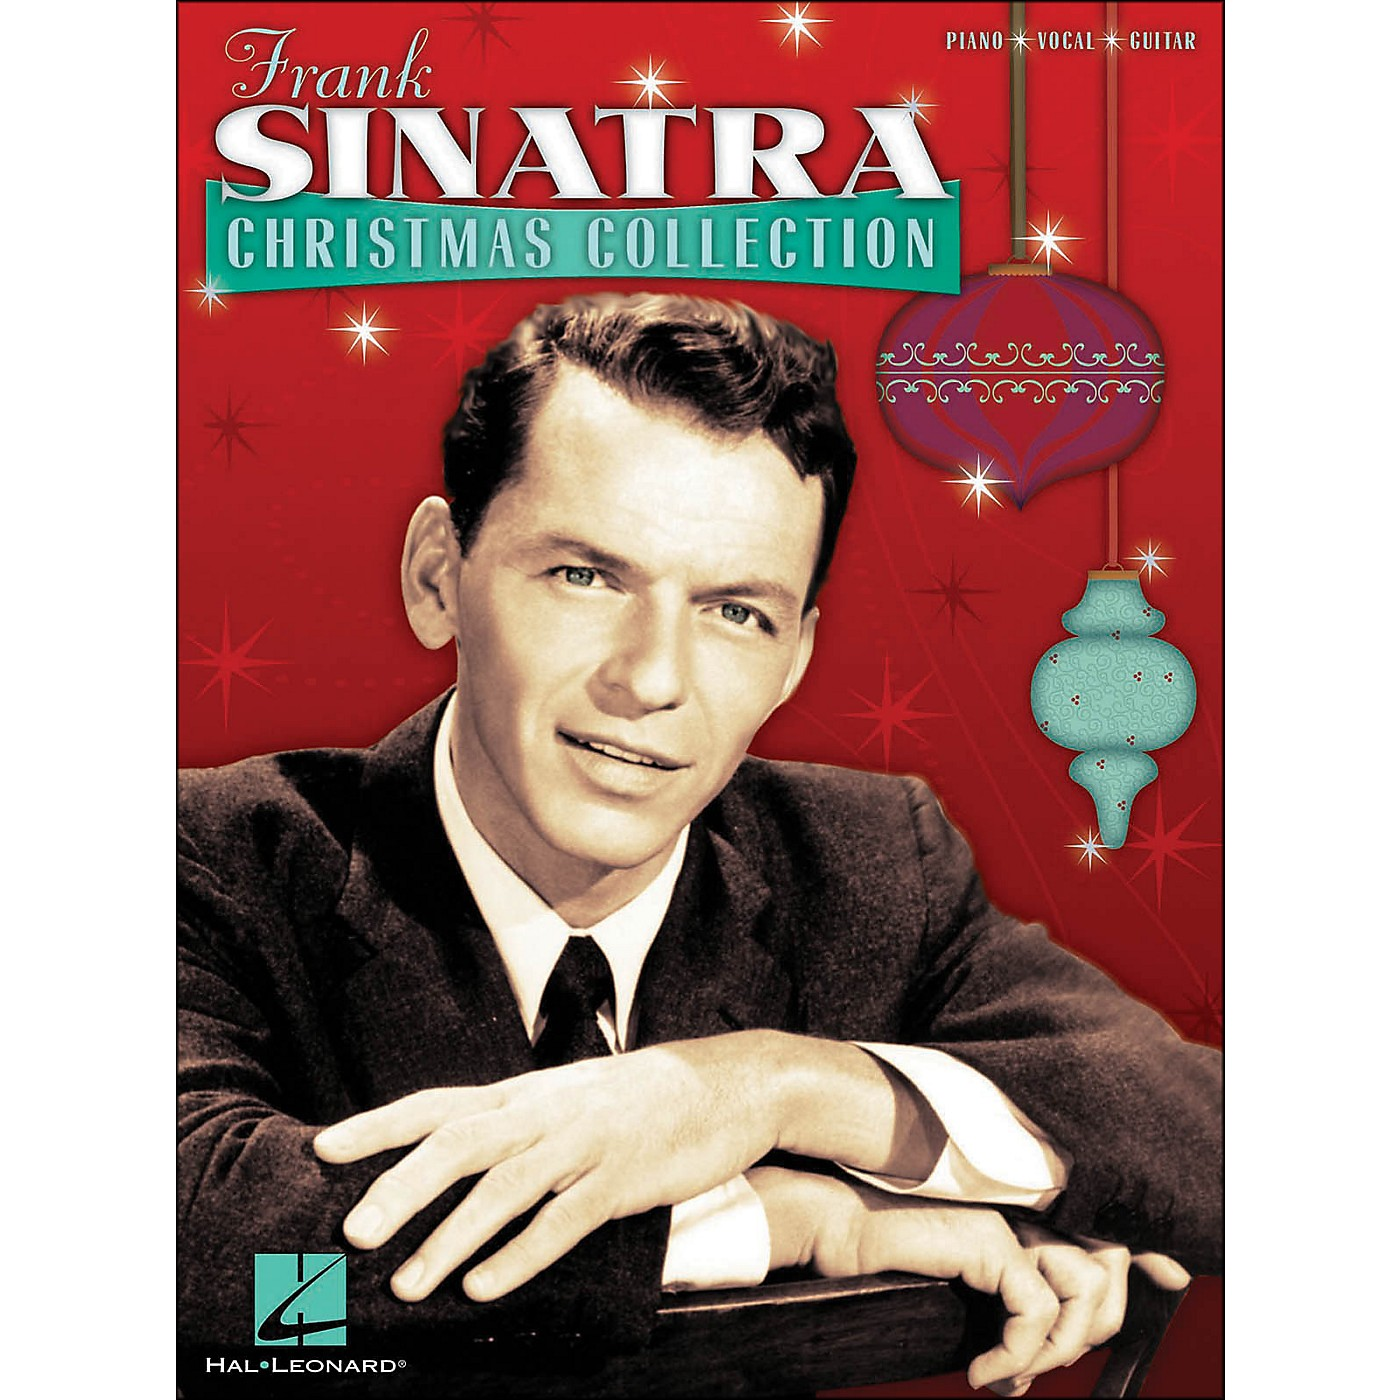 Hal Leonard Frank Sinatra Christmas Collection arranged for piano, vocal, and guitar (P/V/G) thumbnail